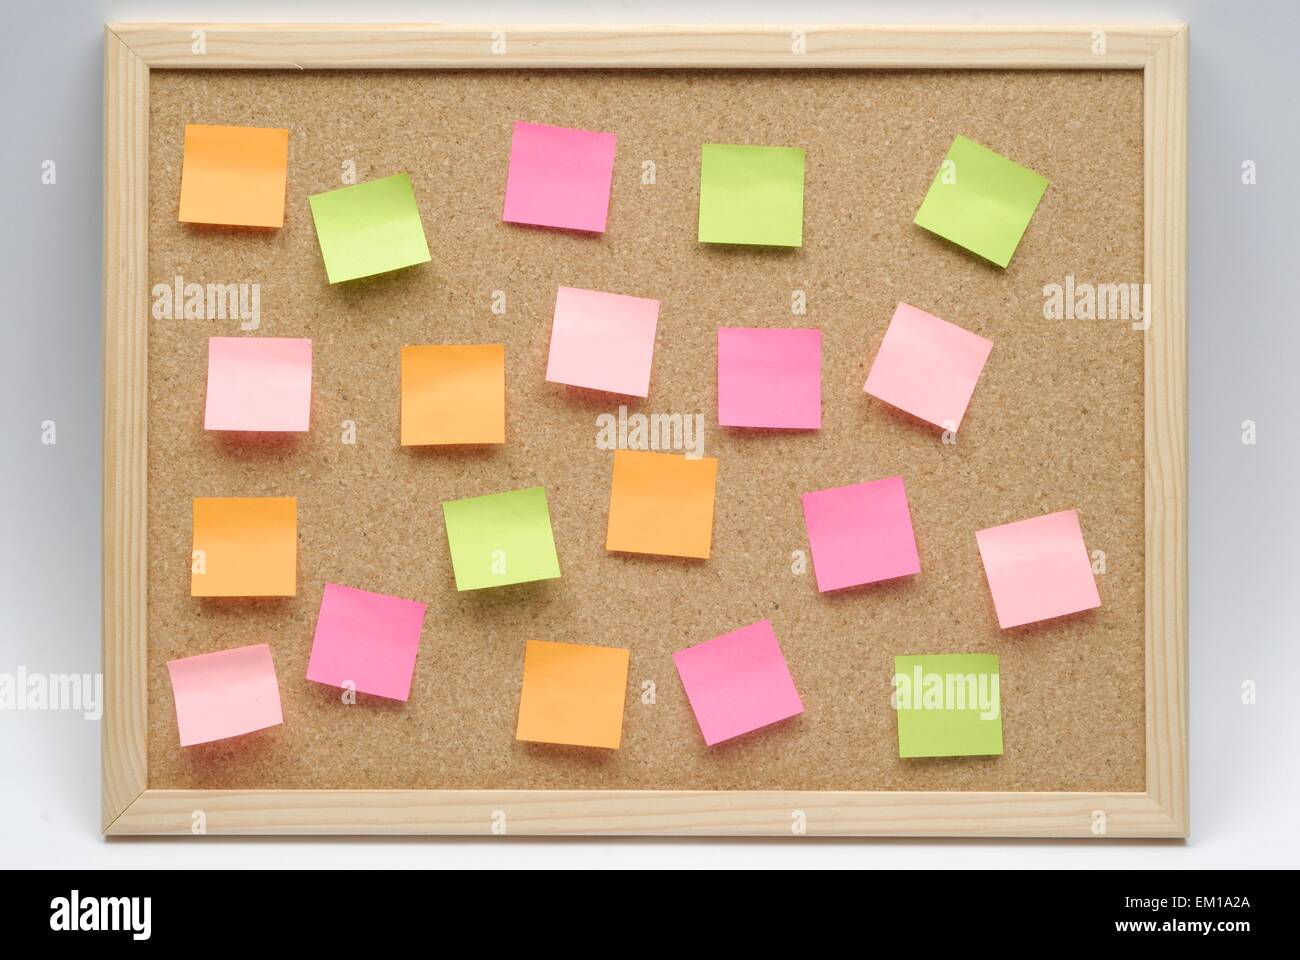 cork board for announcements on white background with paper notes - Stock Image